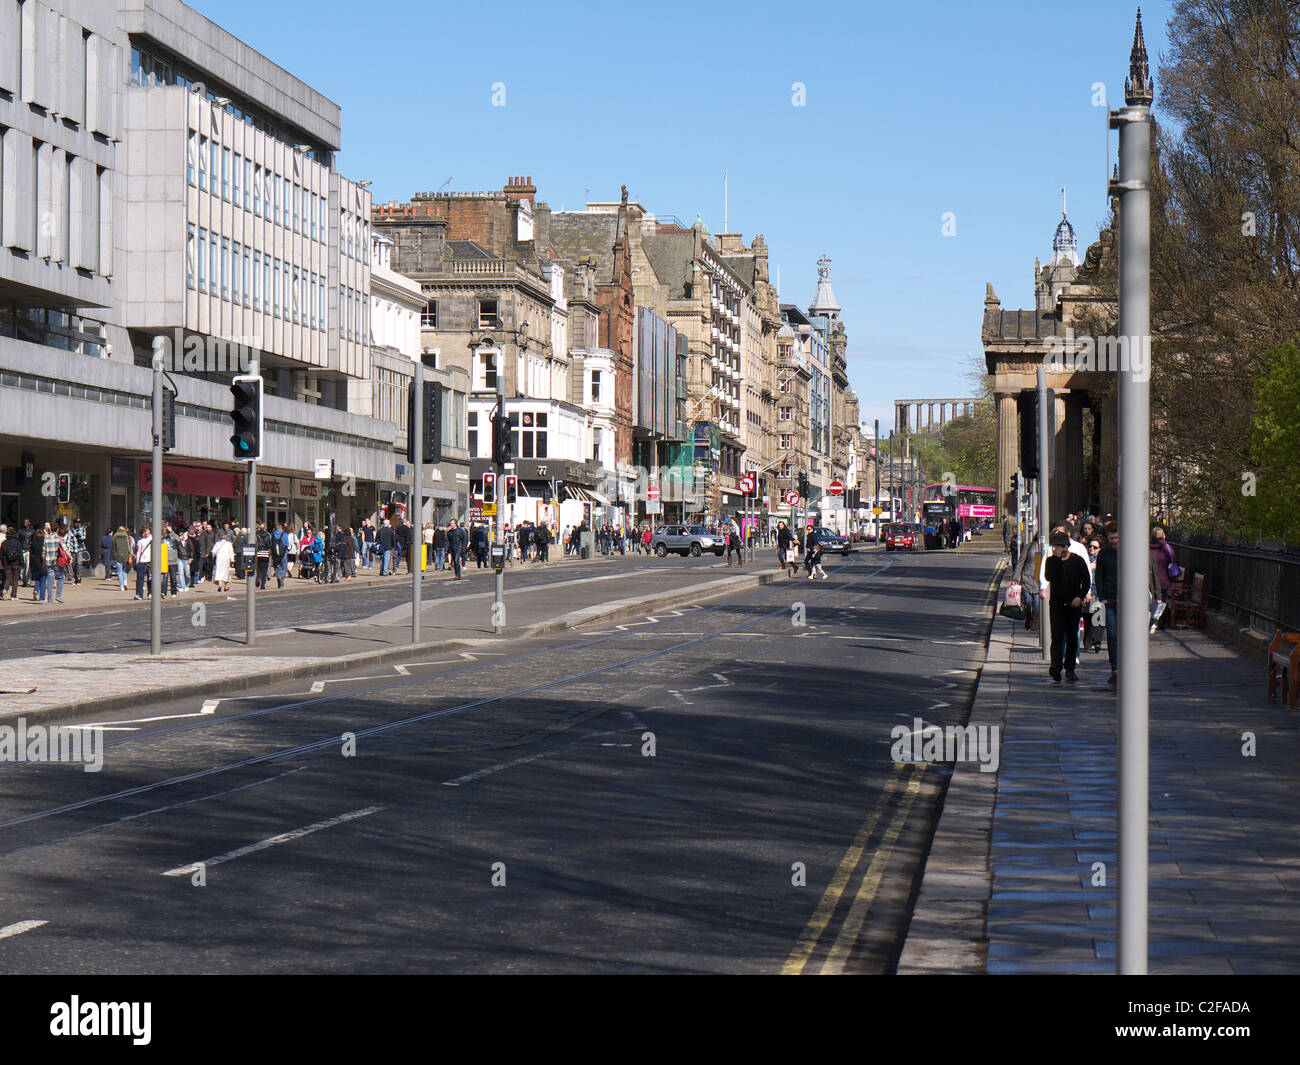 A view looking East along Princes Street, Edinburgh, Scotland, UK, with Calton Hill in the background - Stock Image